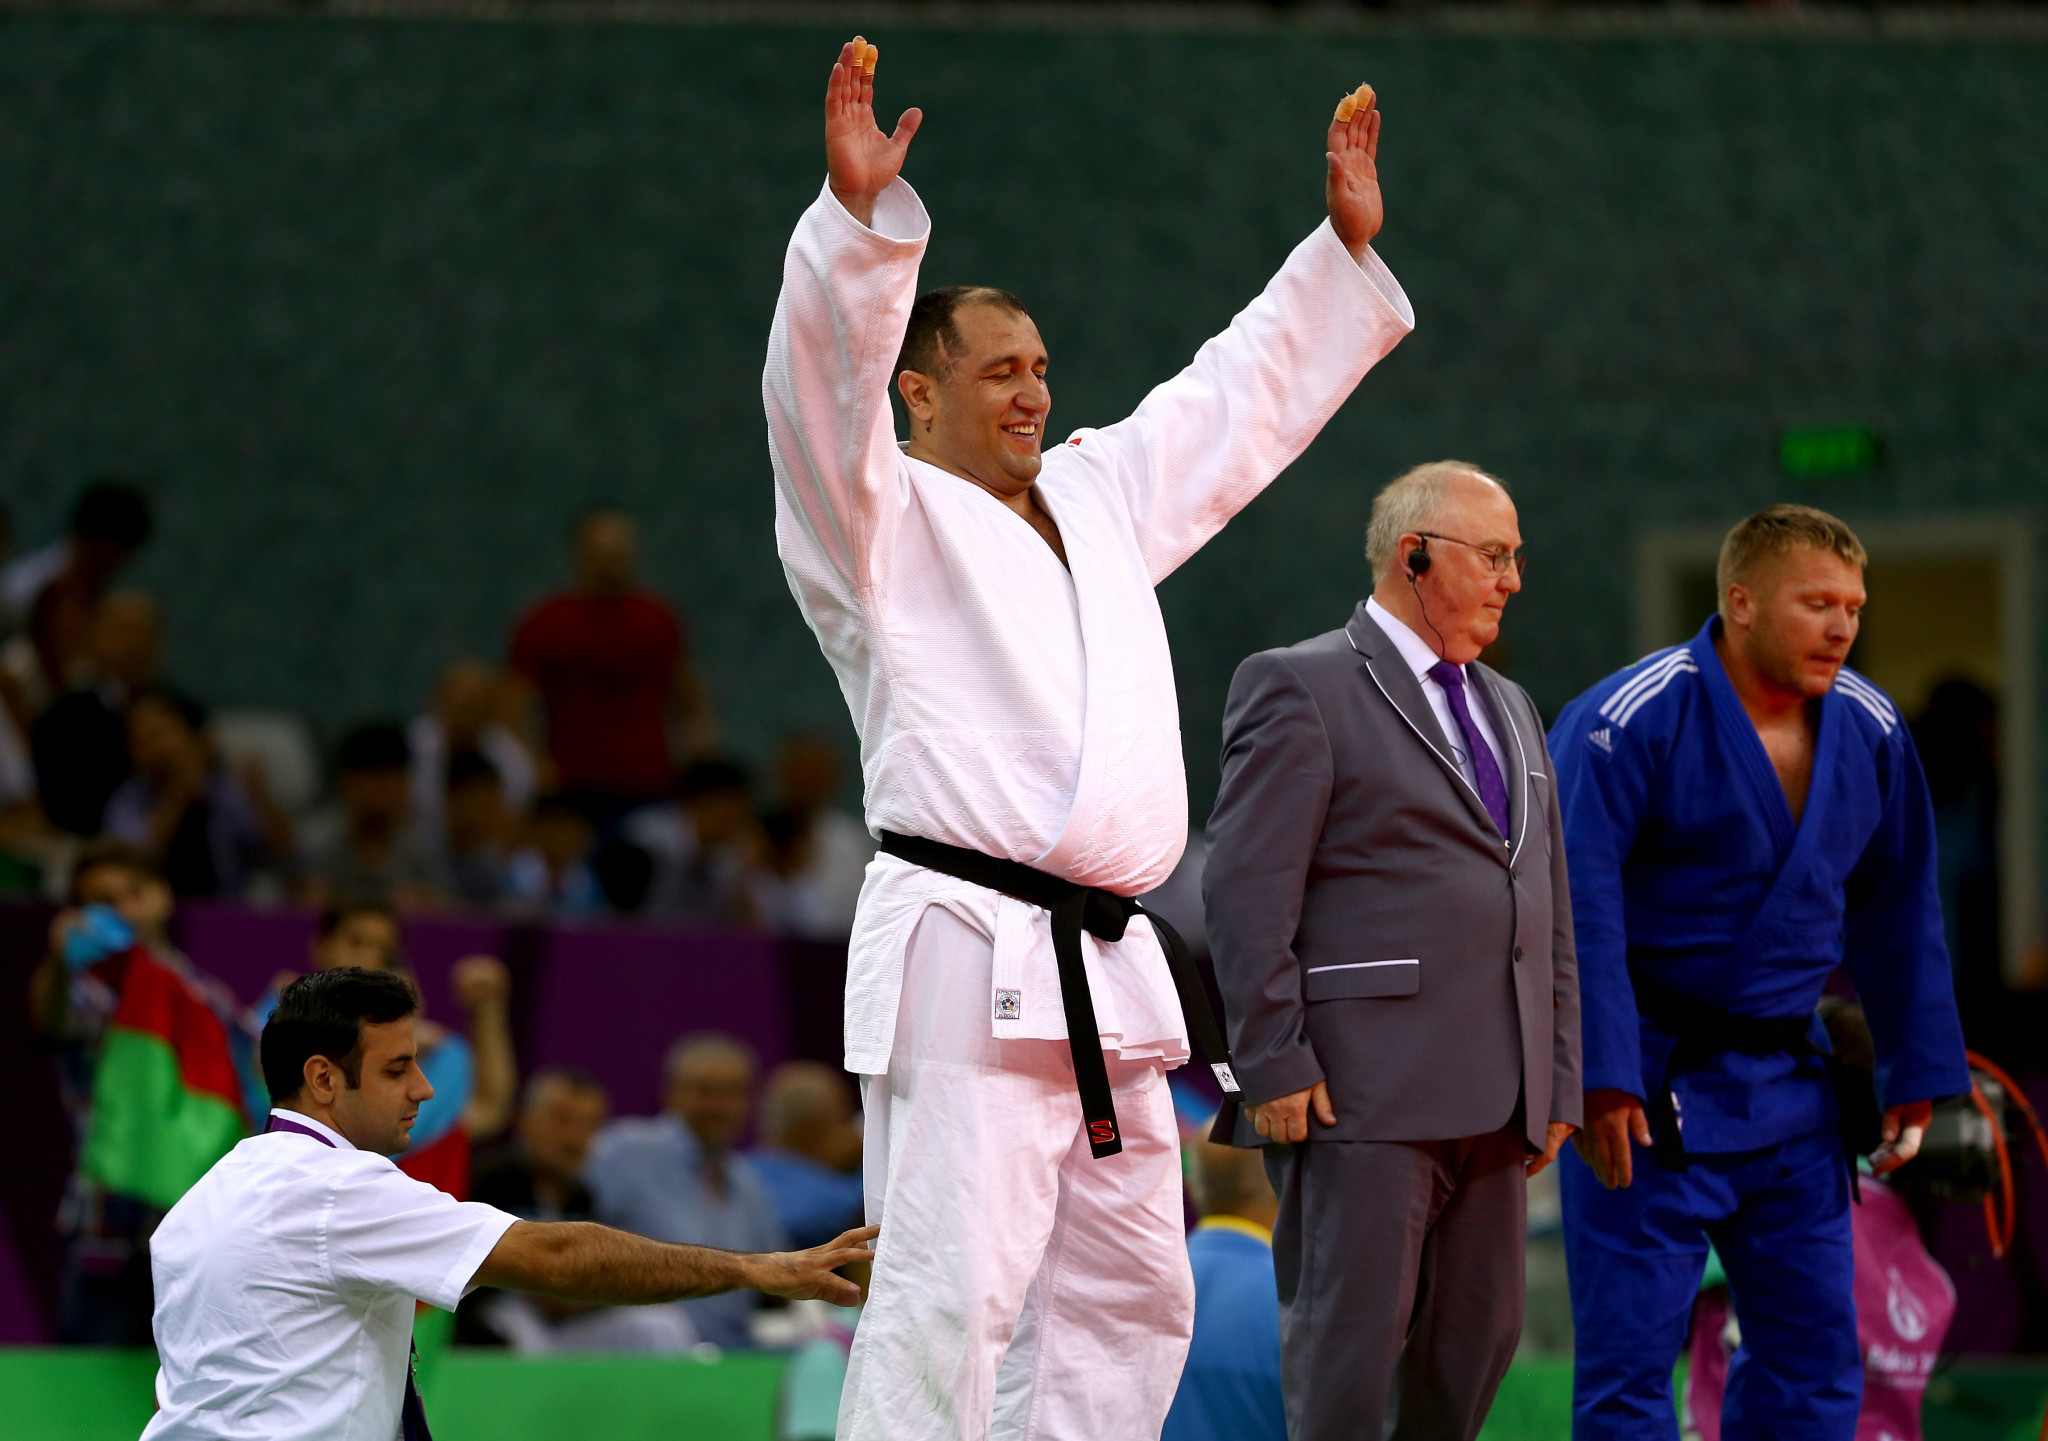 Zakiyev relishing return to action at home IBSA Judo Grand Prix in Baku